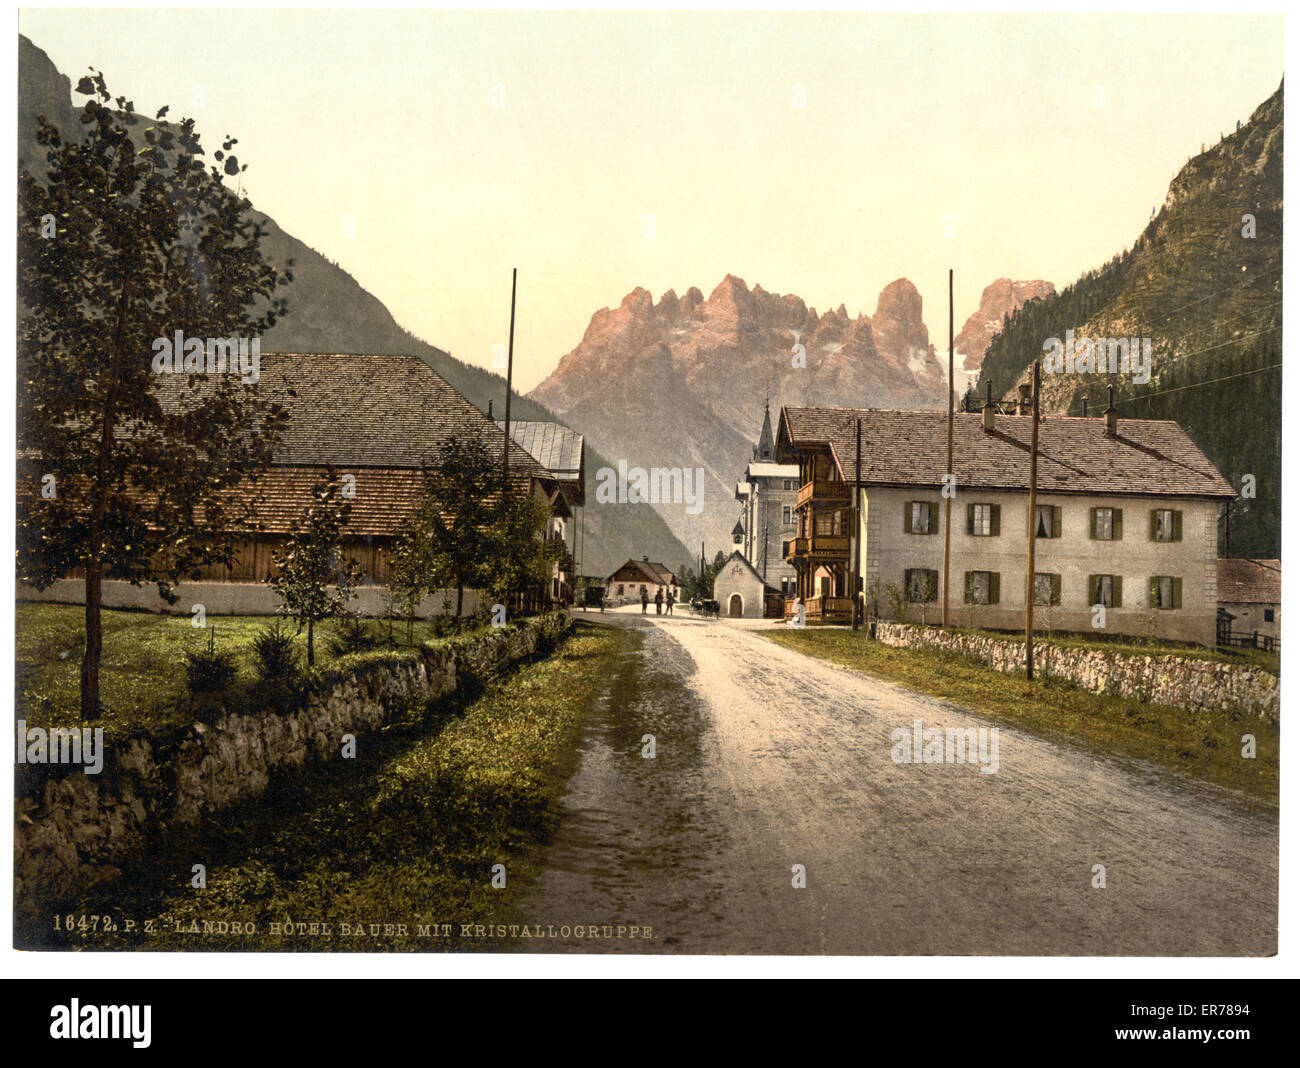 Landro, Hotel Bauer, Tyrol, Austro-Hungary. Date between ca. 1890 and ca. 1900. - Stock Image